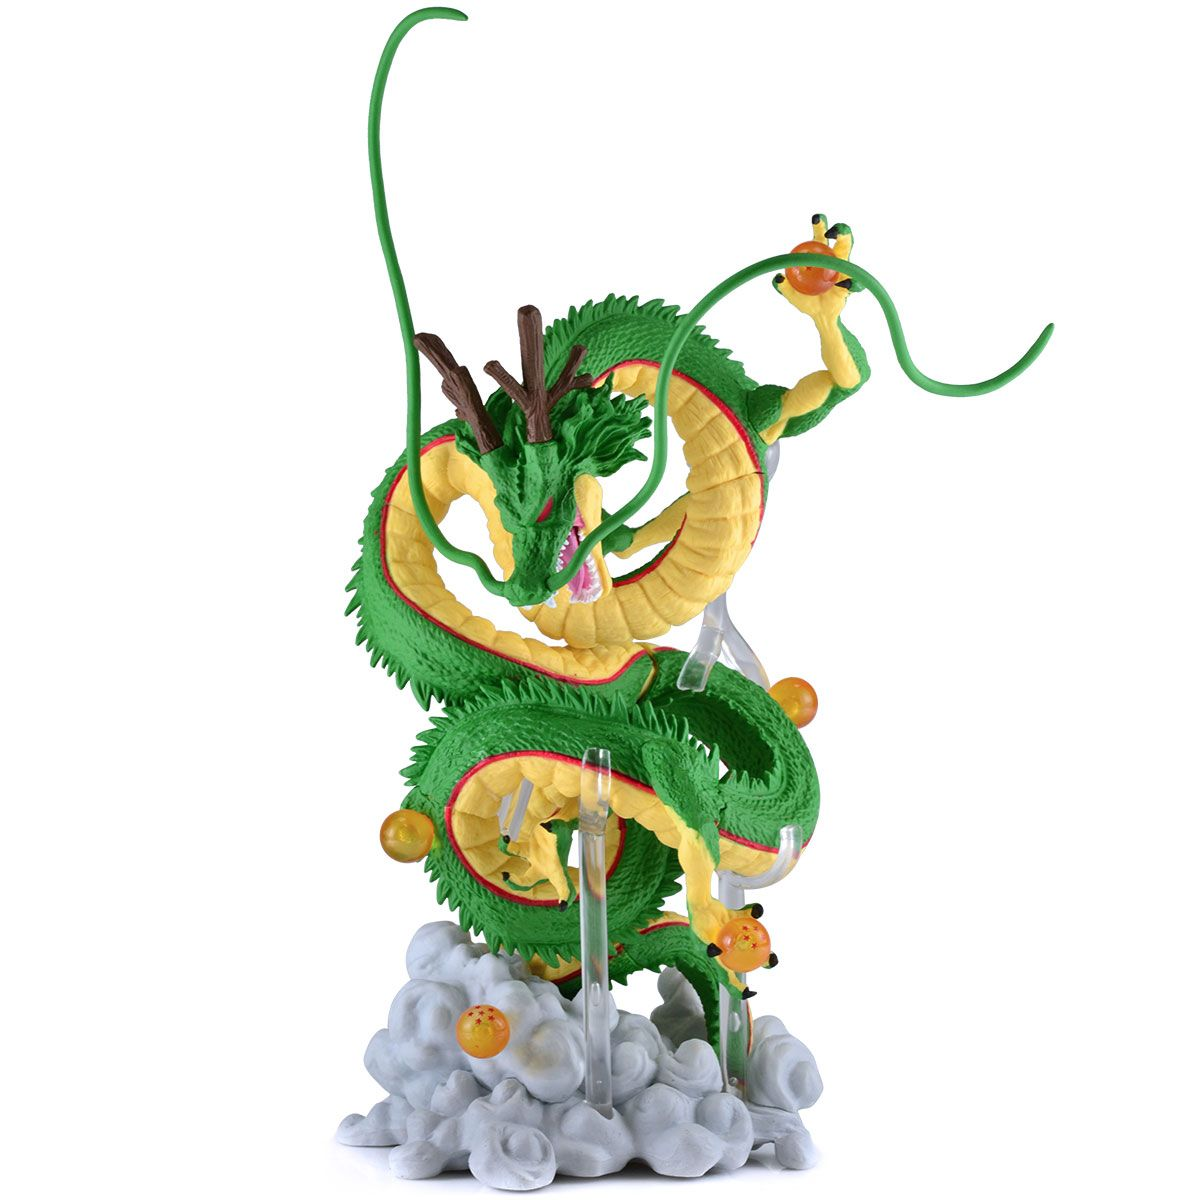 Dragon Ball Z - Action Figure - Creator X Creator - Shenlong Verde